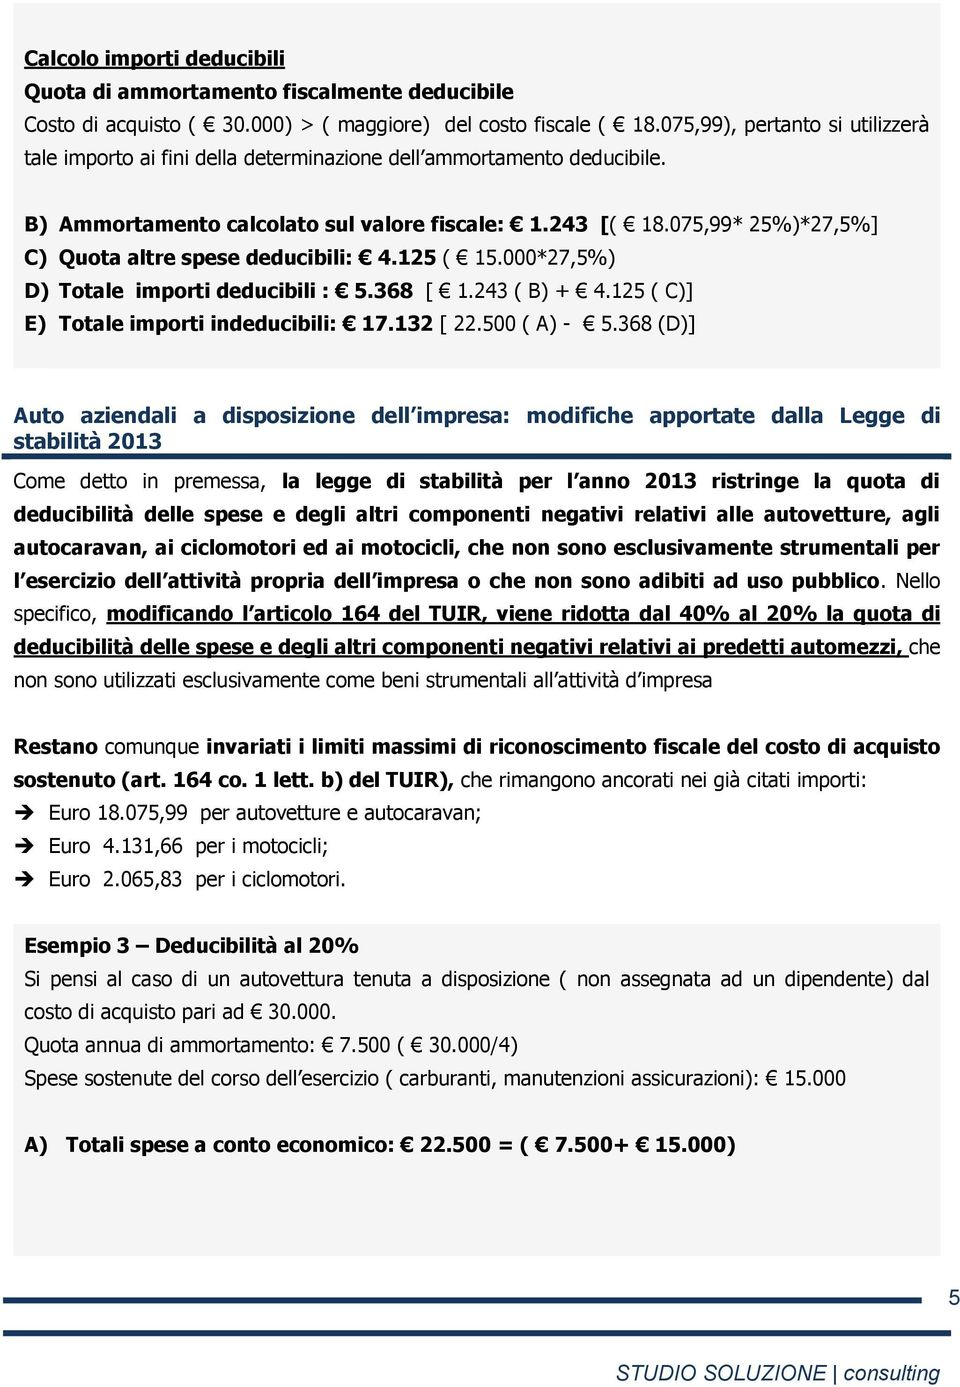 075,99* 25%)*27,5%] C) Quota altre spese deducibili: 4.125 ( 15.000*27,5%) D) Totale importi deducibili : 5.368 [ 1.243 ( B) + 4.125 ( C)] E) Totale importi indeducibili: 17.132 [ 22.500 ( A) - 5.